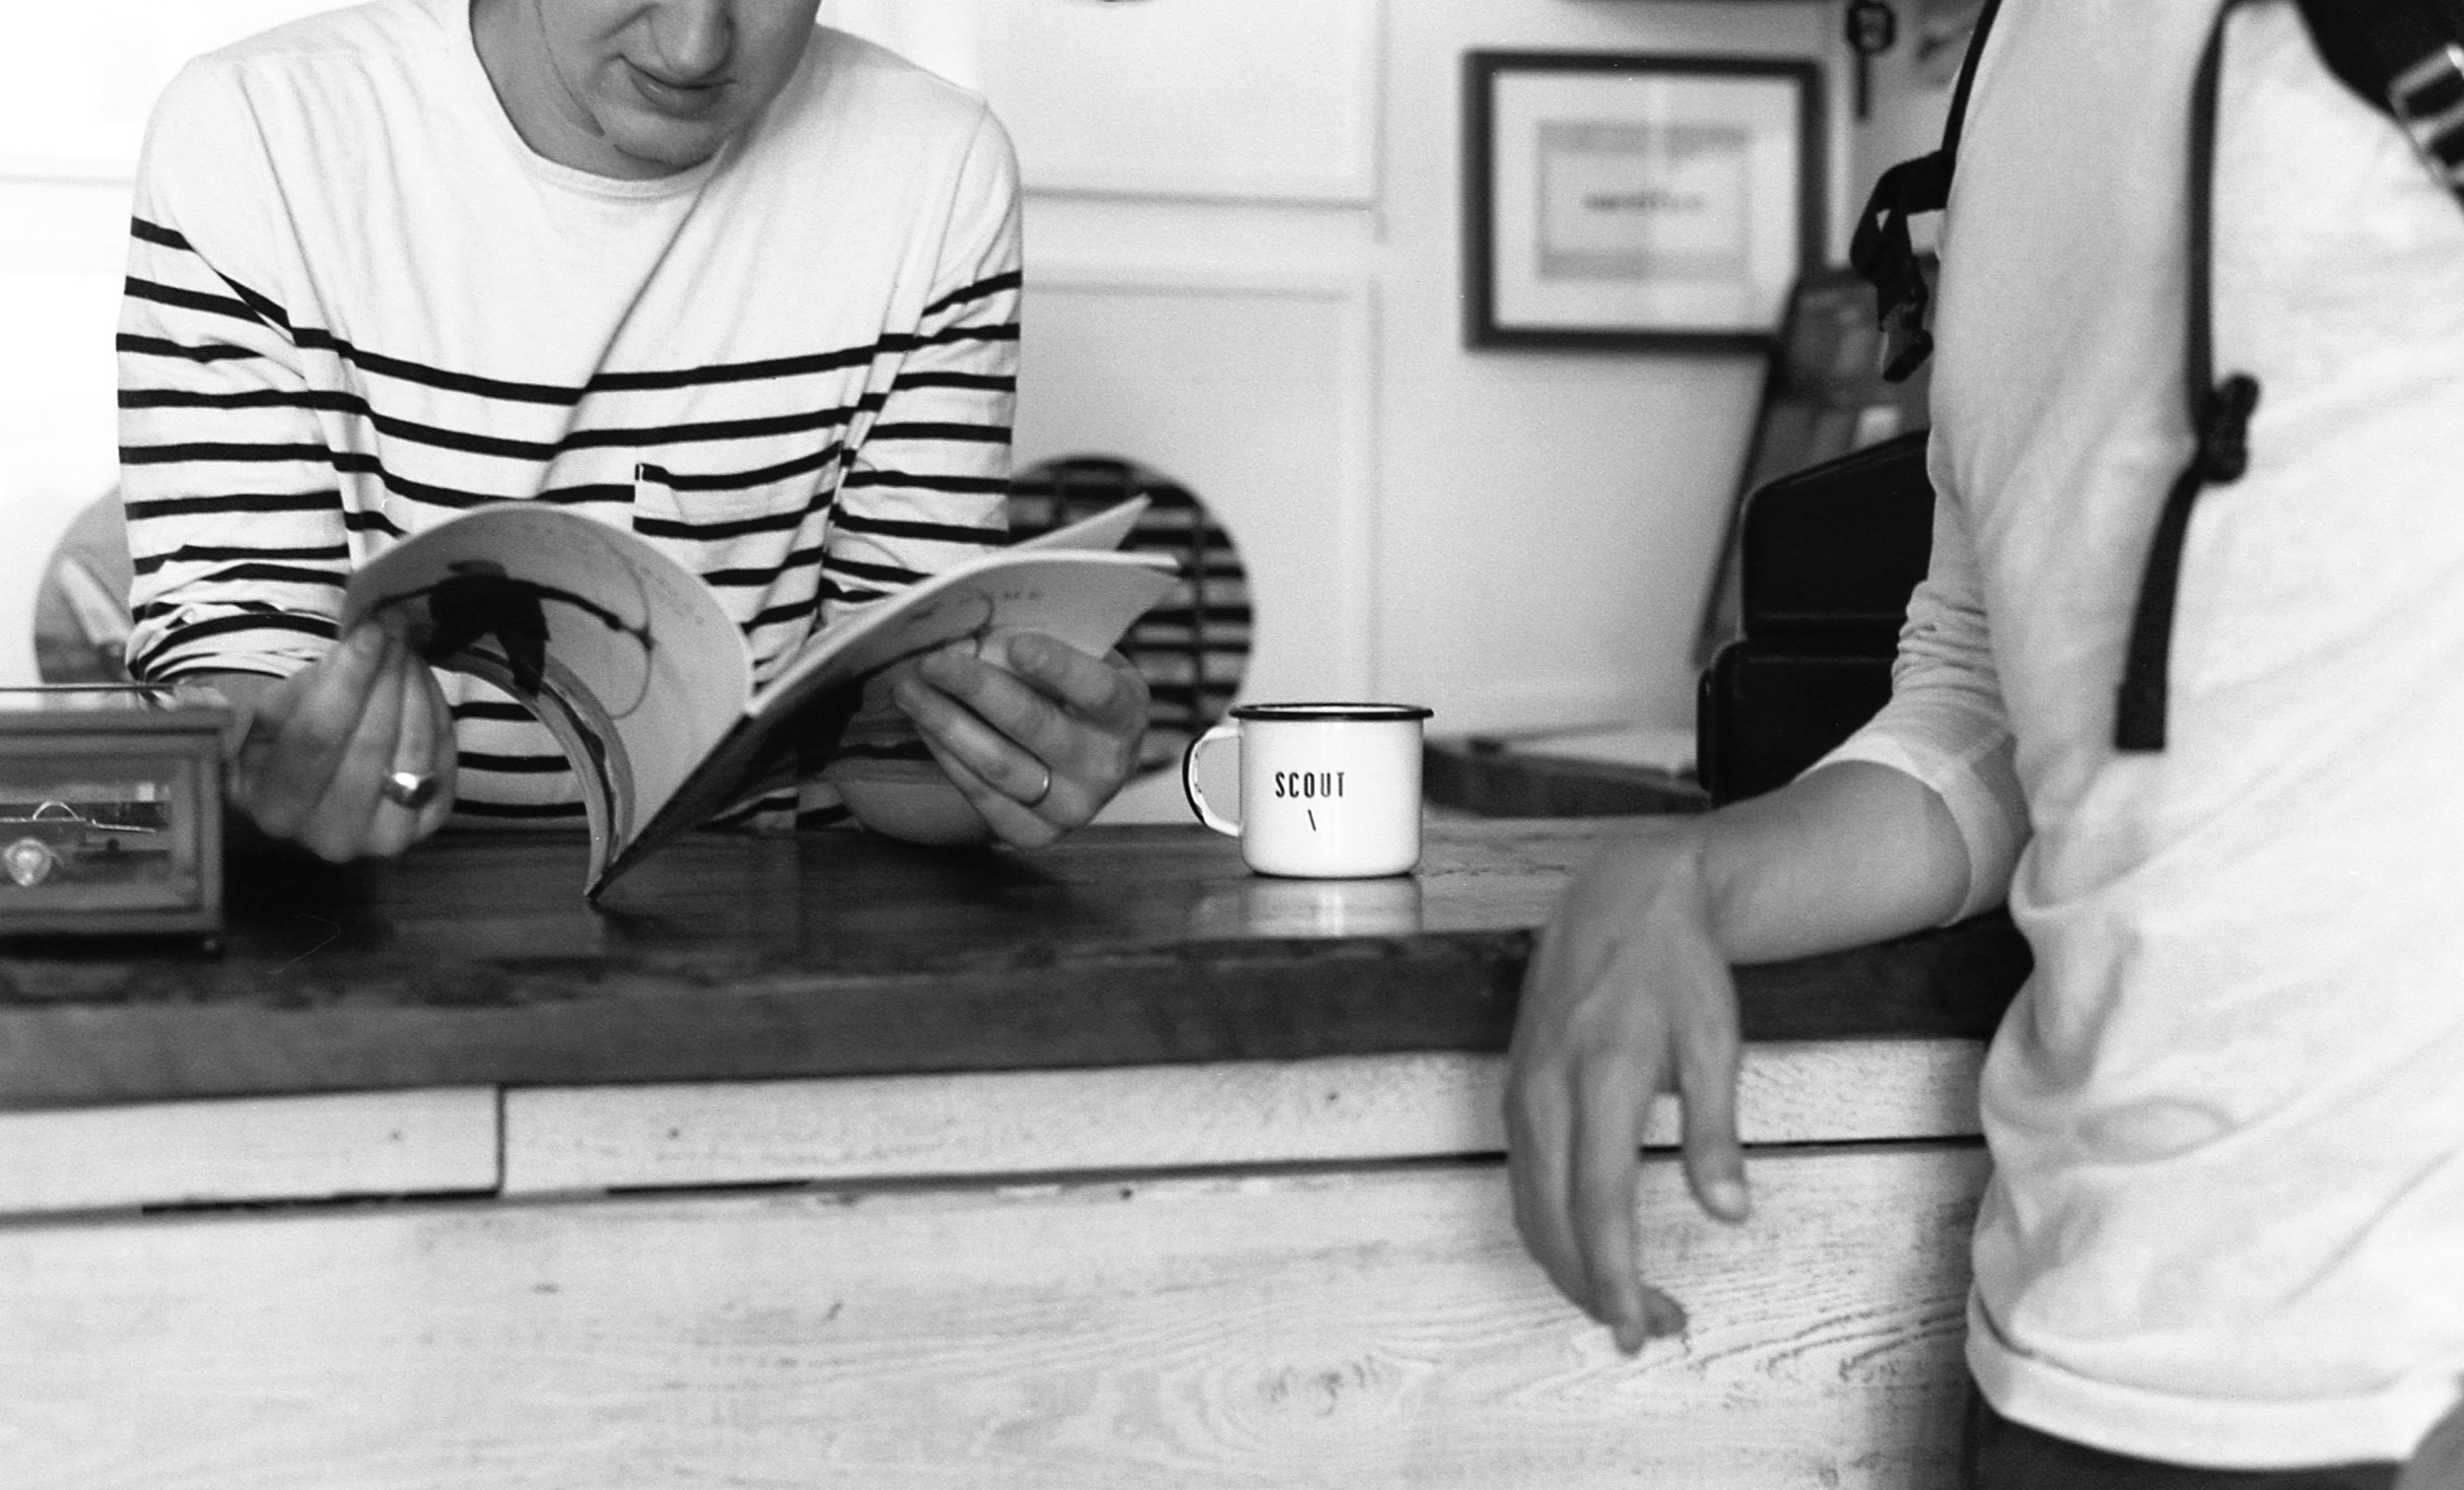 Two people lean against a coffee shop counter, one reads a magazine